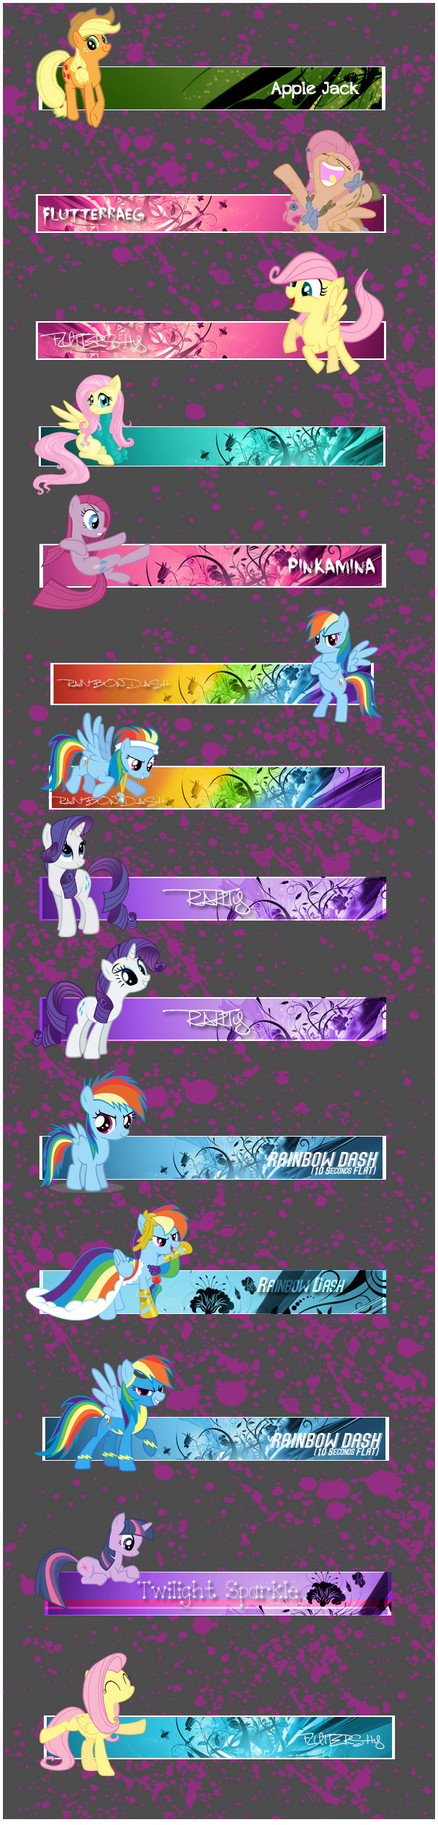 Pony Forum Signatures by Quarion-Design